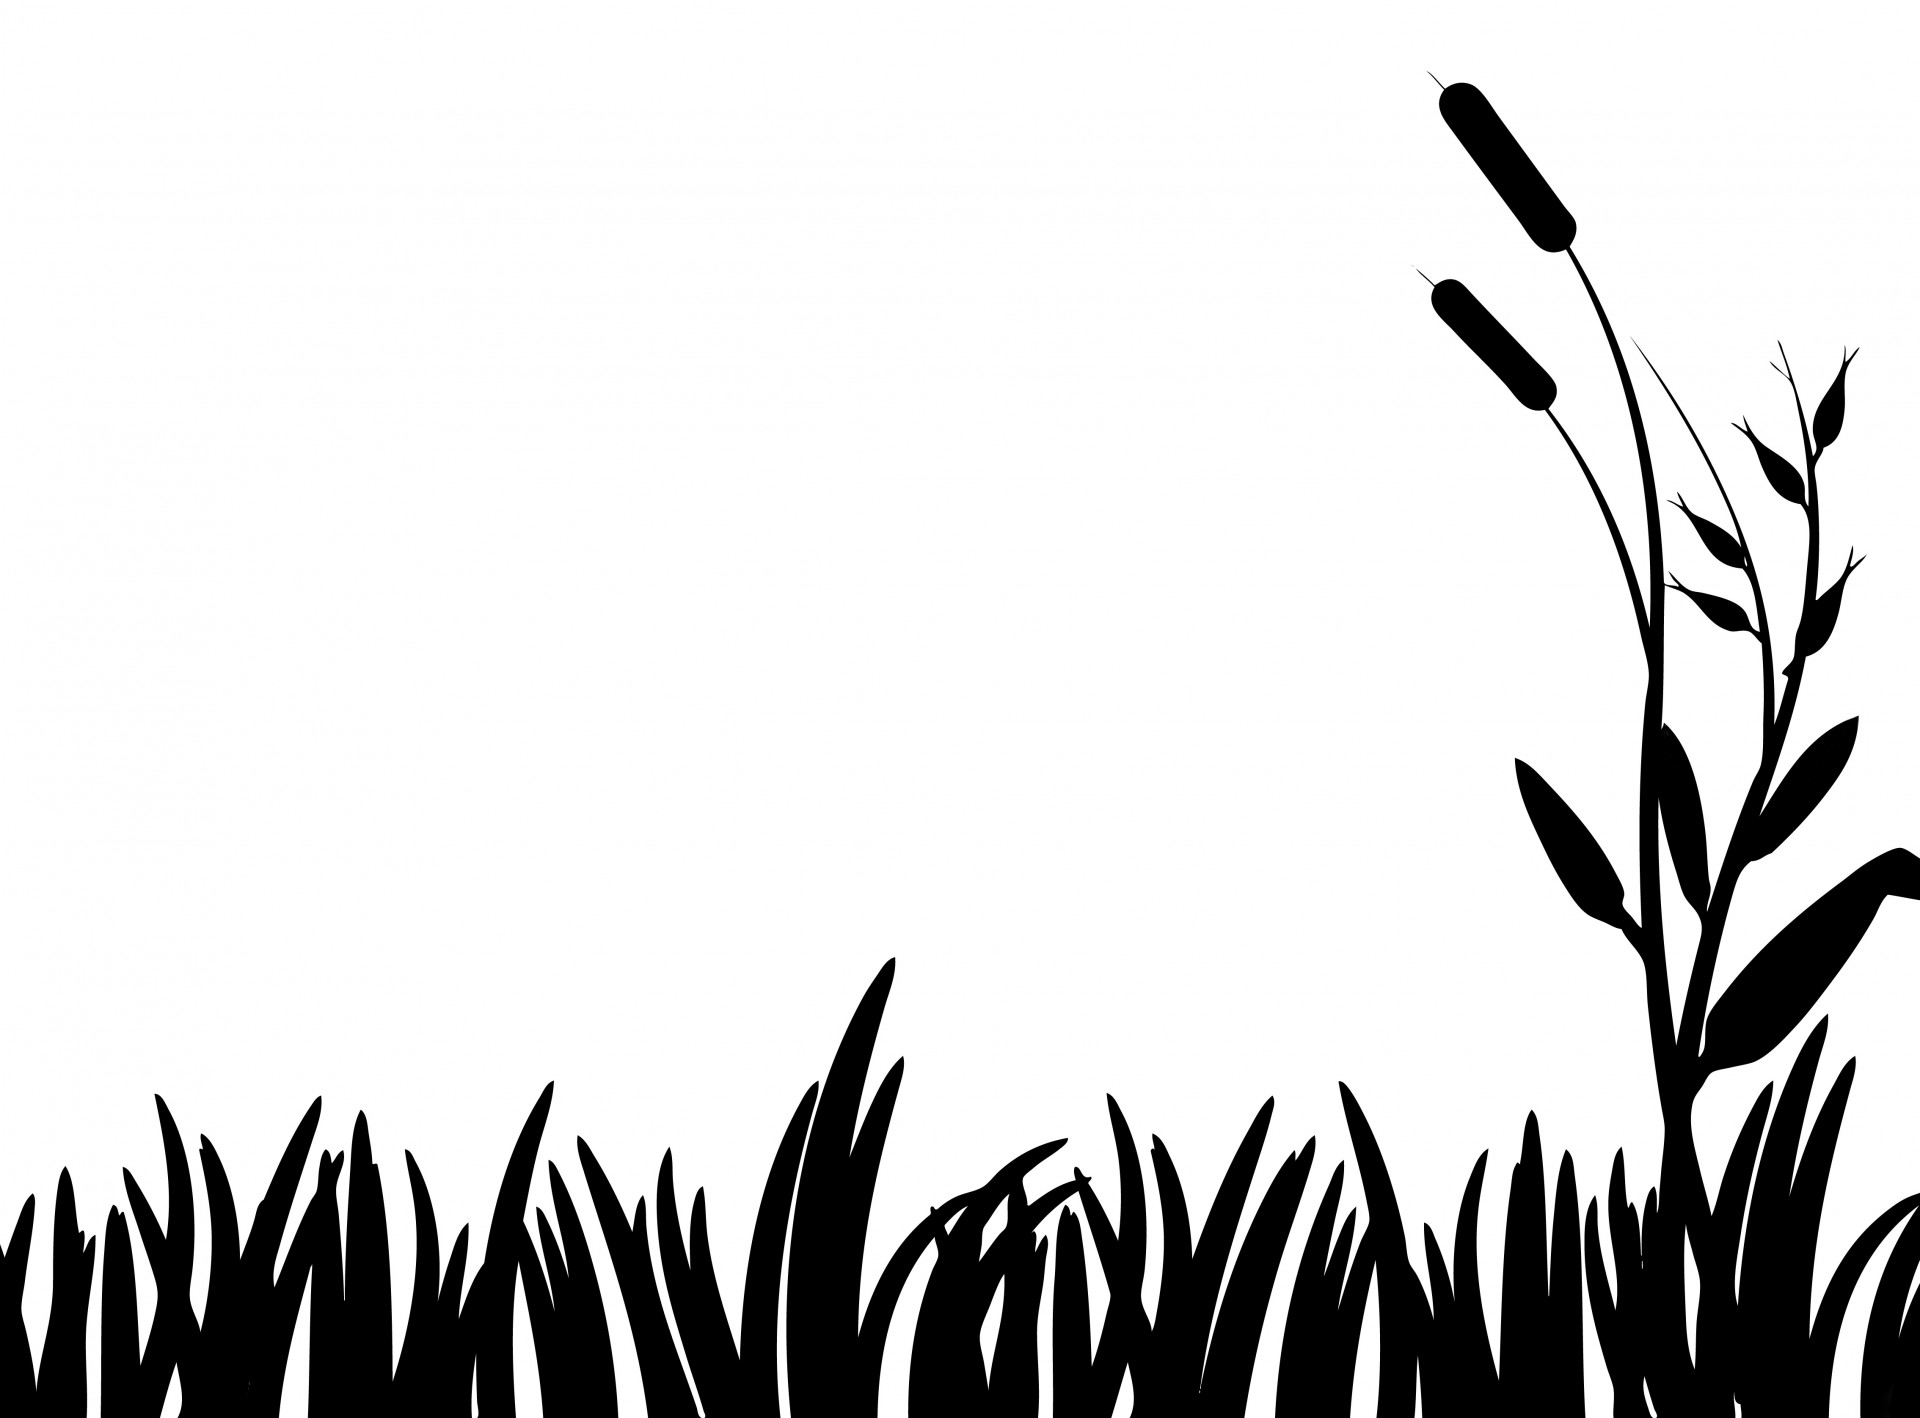 1920x1418 Grass Silhouette Clipart Free Stock Photo